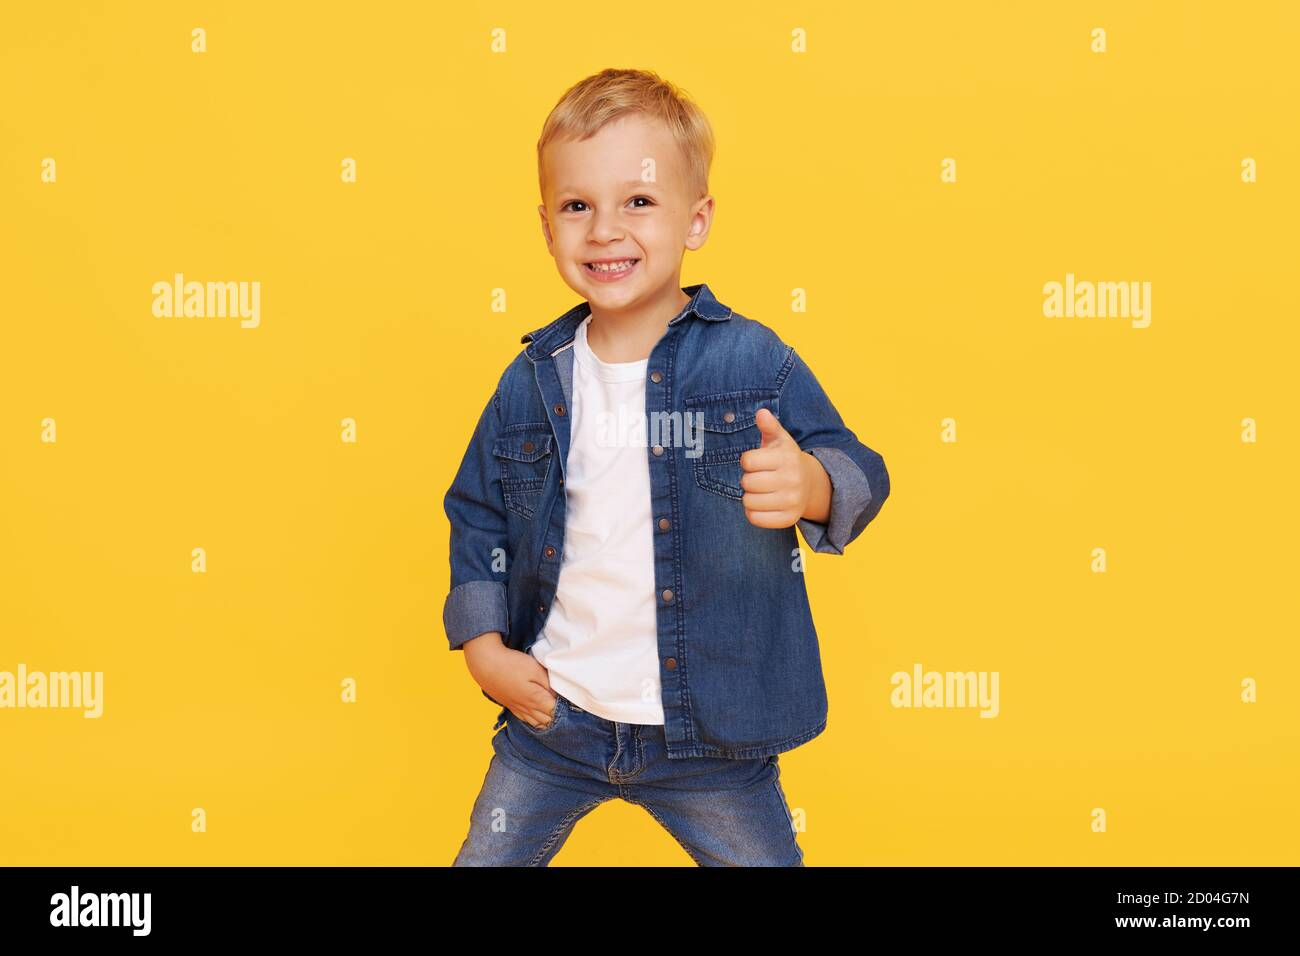 Childrens Face High Resolution Stock Photography and Images   Page ...